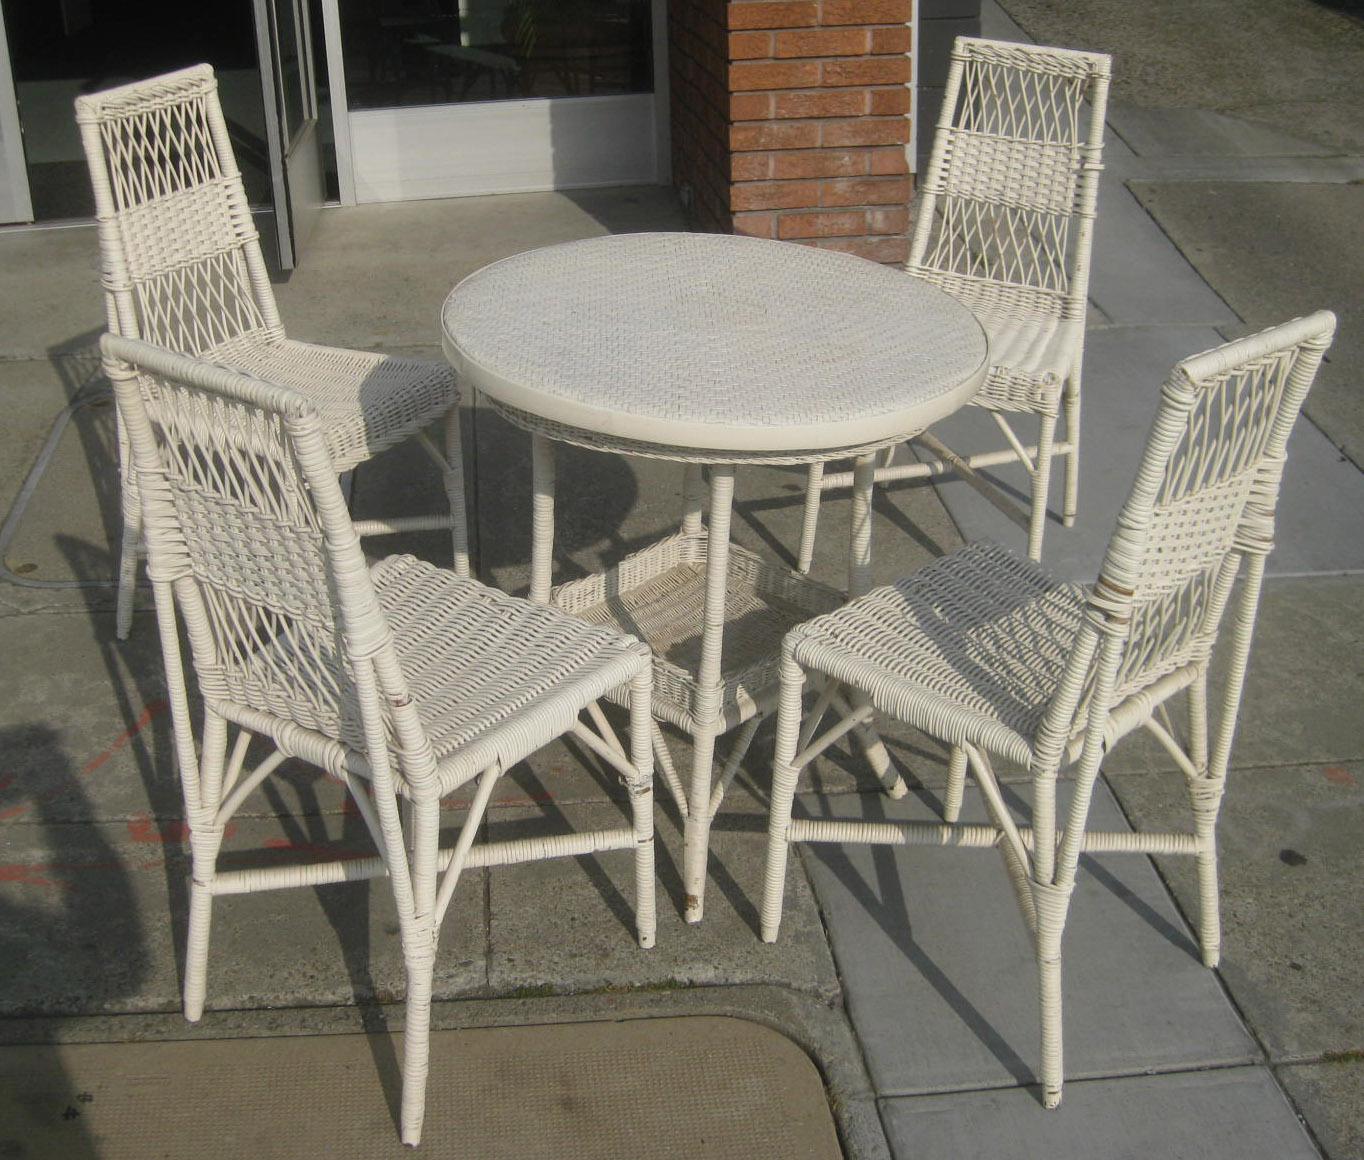 UHURU FURNITURE & COLLECTIBLES SOLD White Wicker Patio Set $130